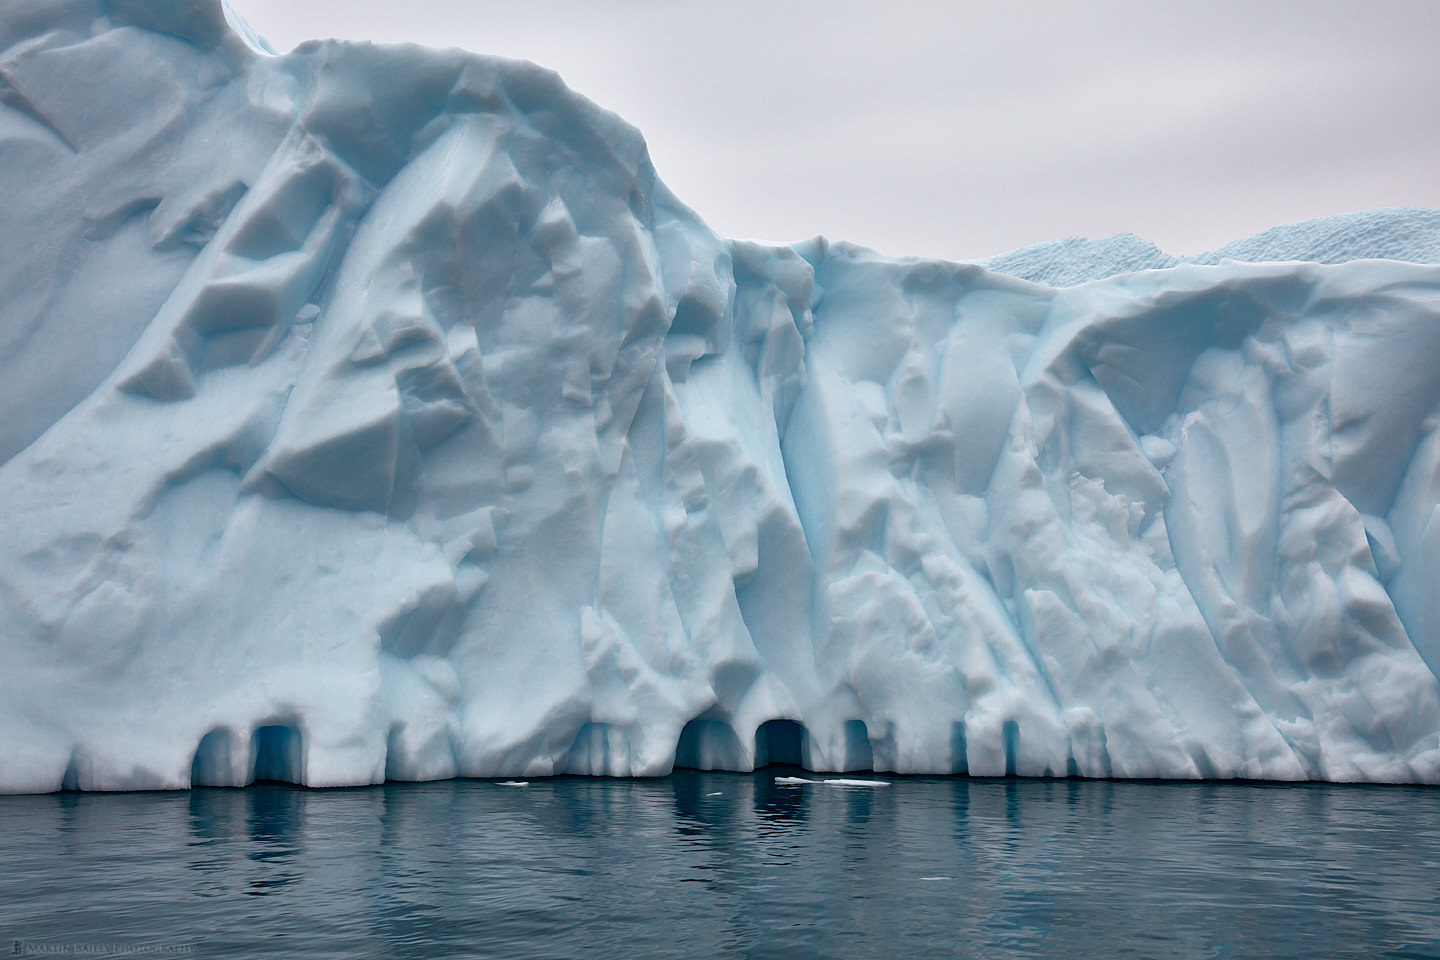 Small Archways in Iceberg